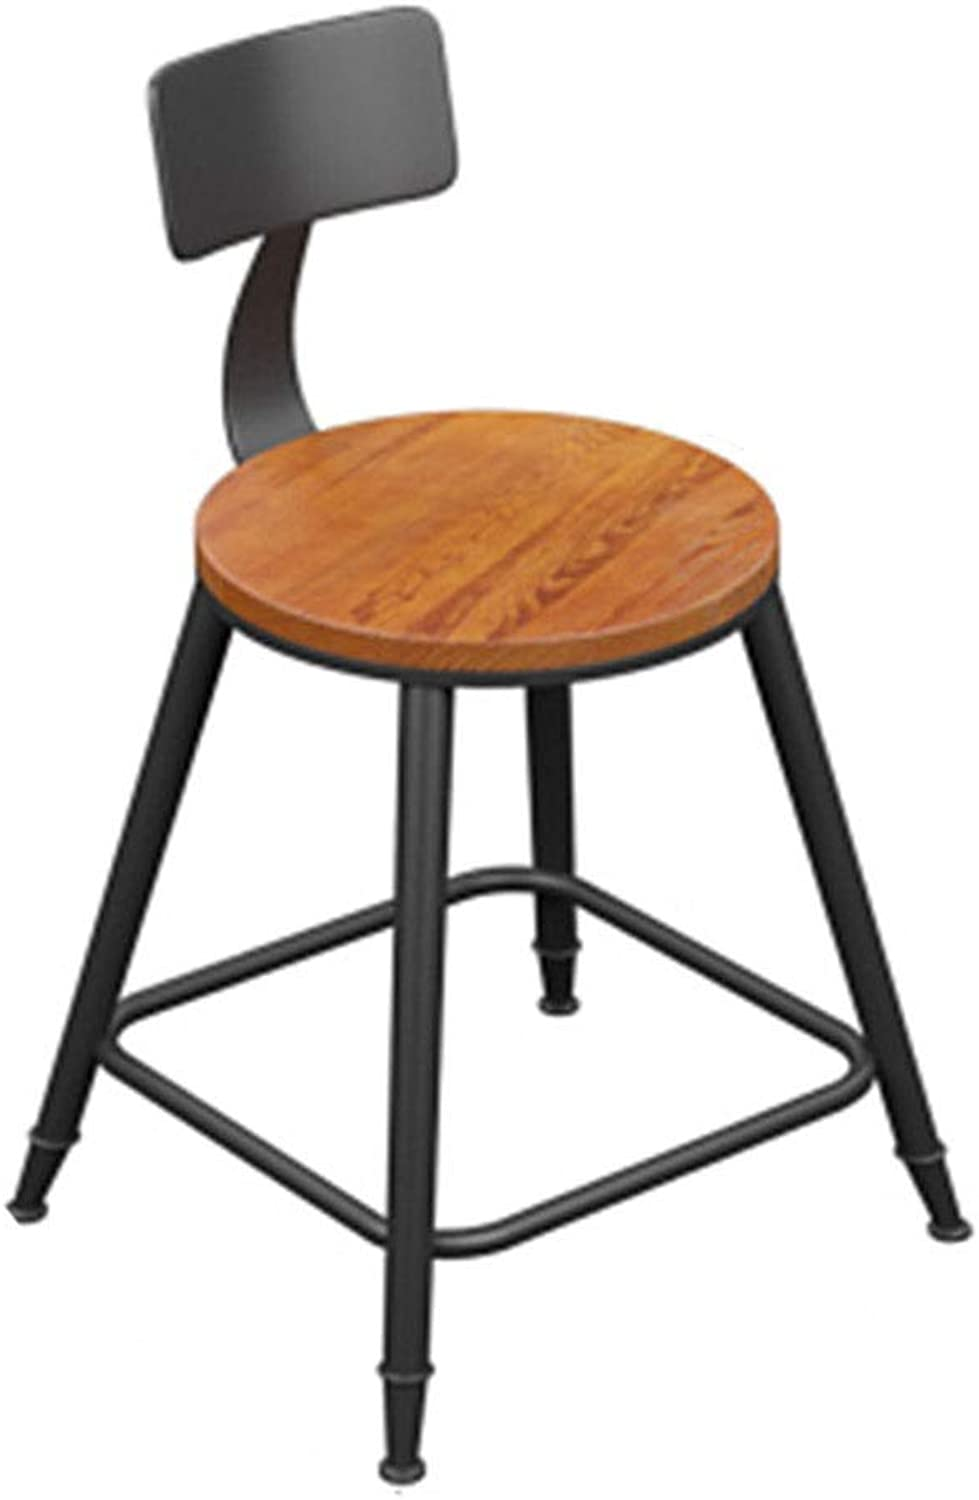 Bar Chair Simple High Chair Solid Wood Iron Art Table and Chair High Stool 2 colors 1 Size (color   B)